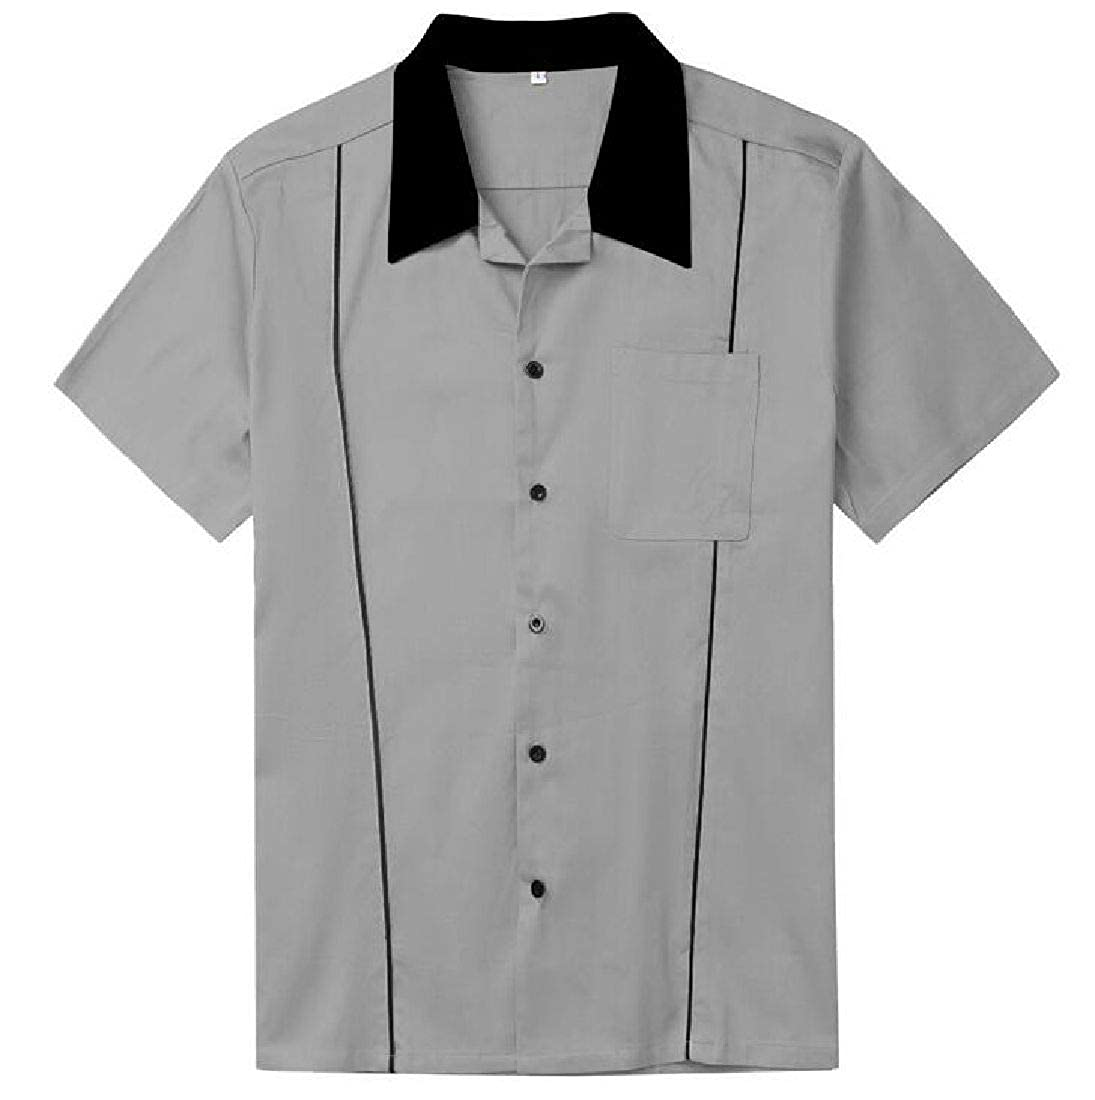 GRMO Men Vintage Short Sleeve Spread Collar Button Front Shirt with Pocket